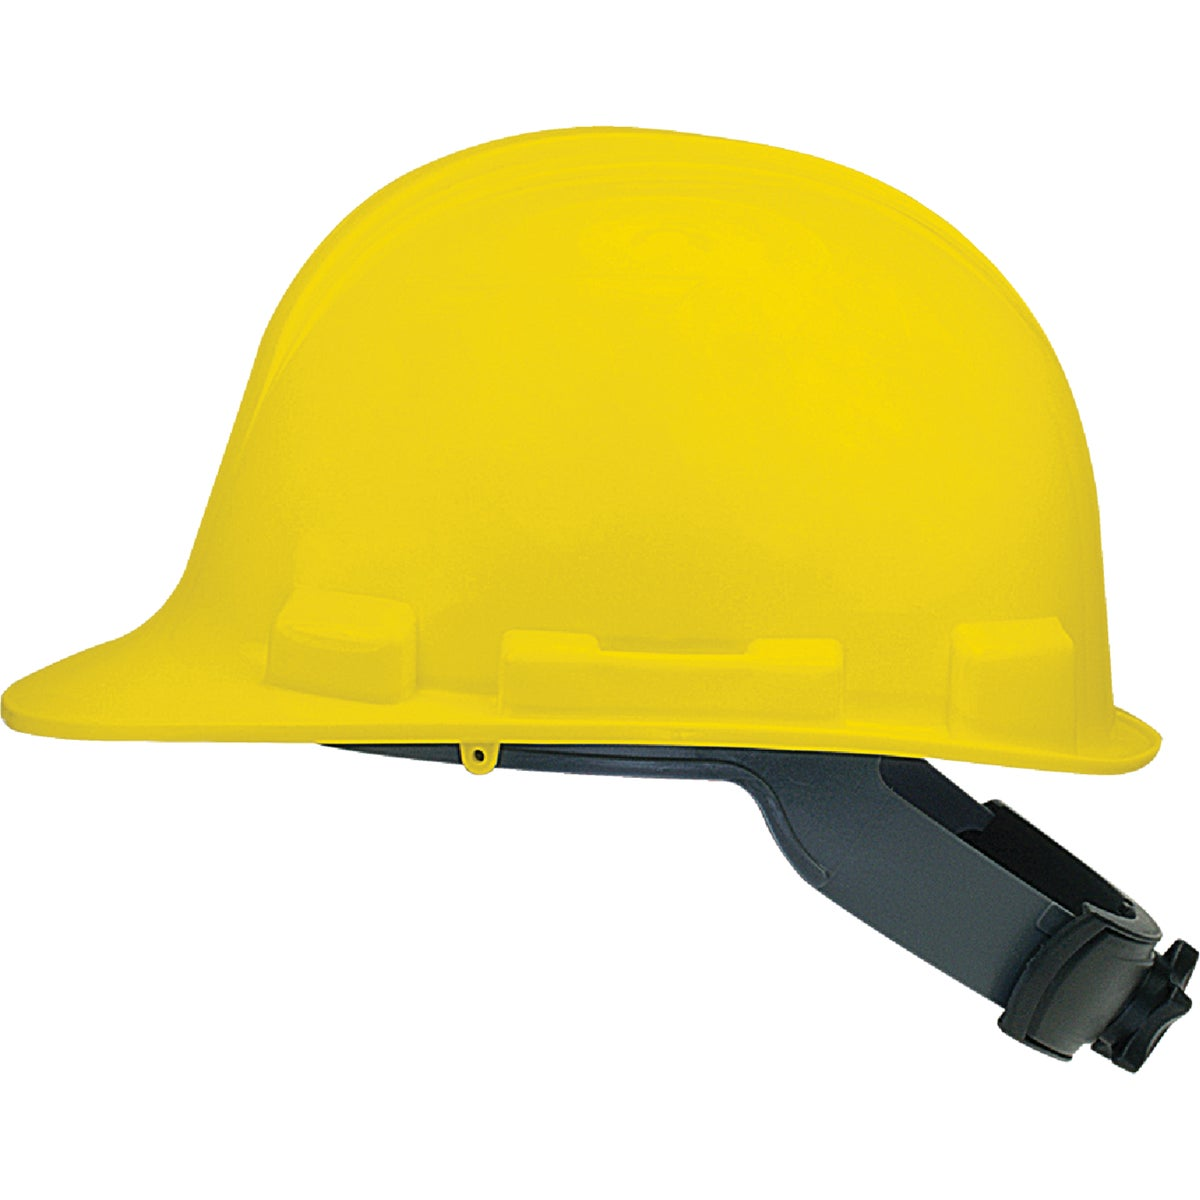 RATCHET YELLOW HARD HAT - 475360 by Msa Safety